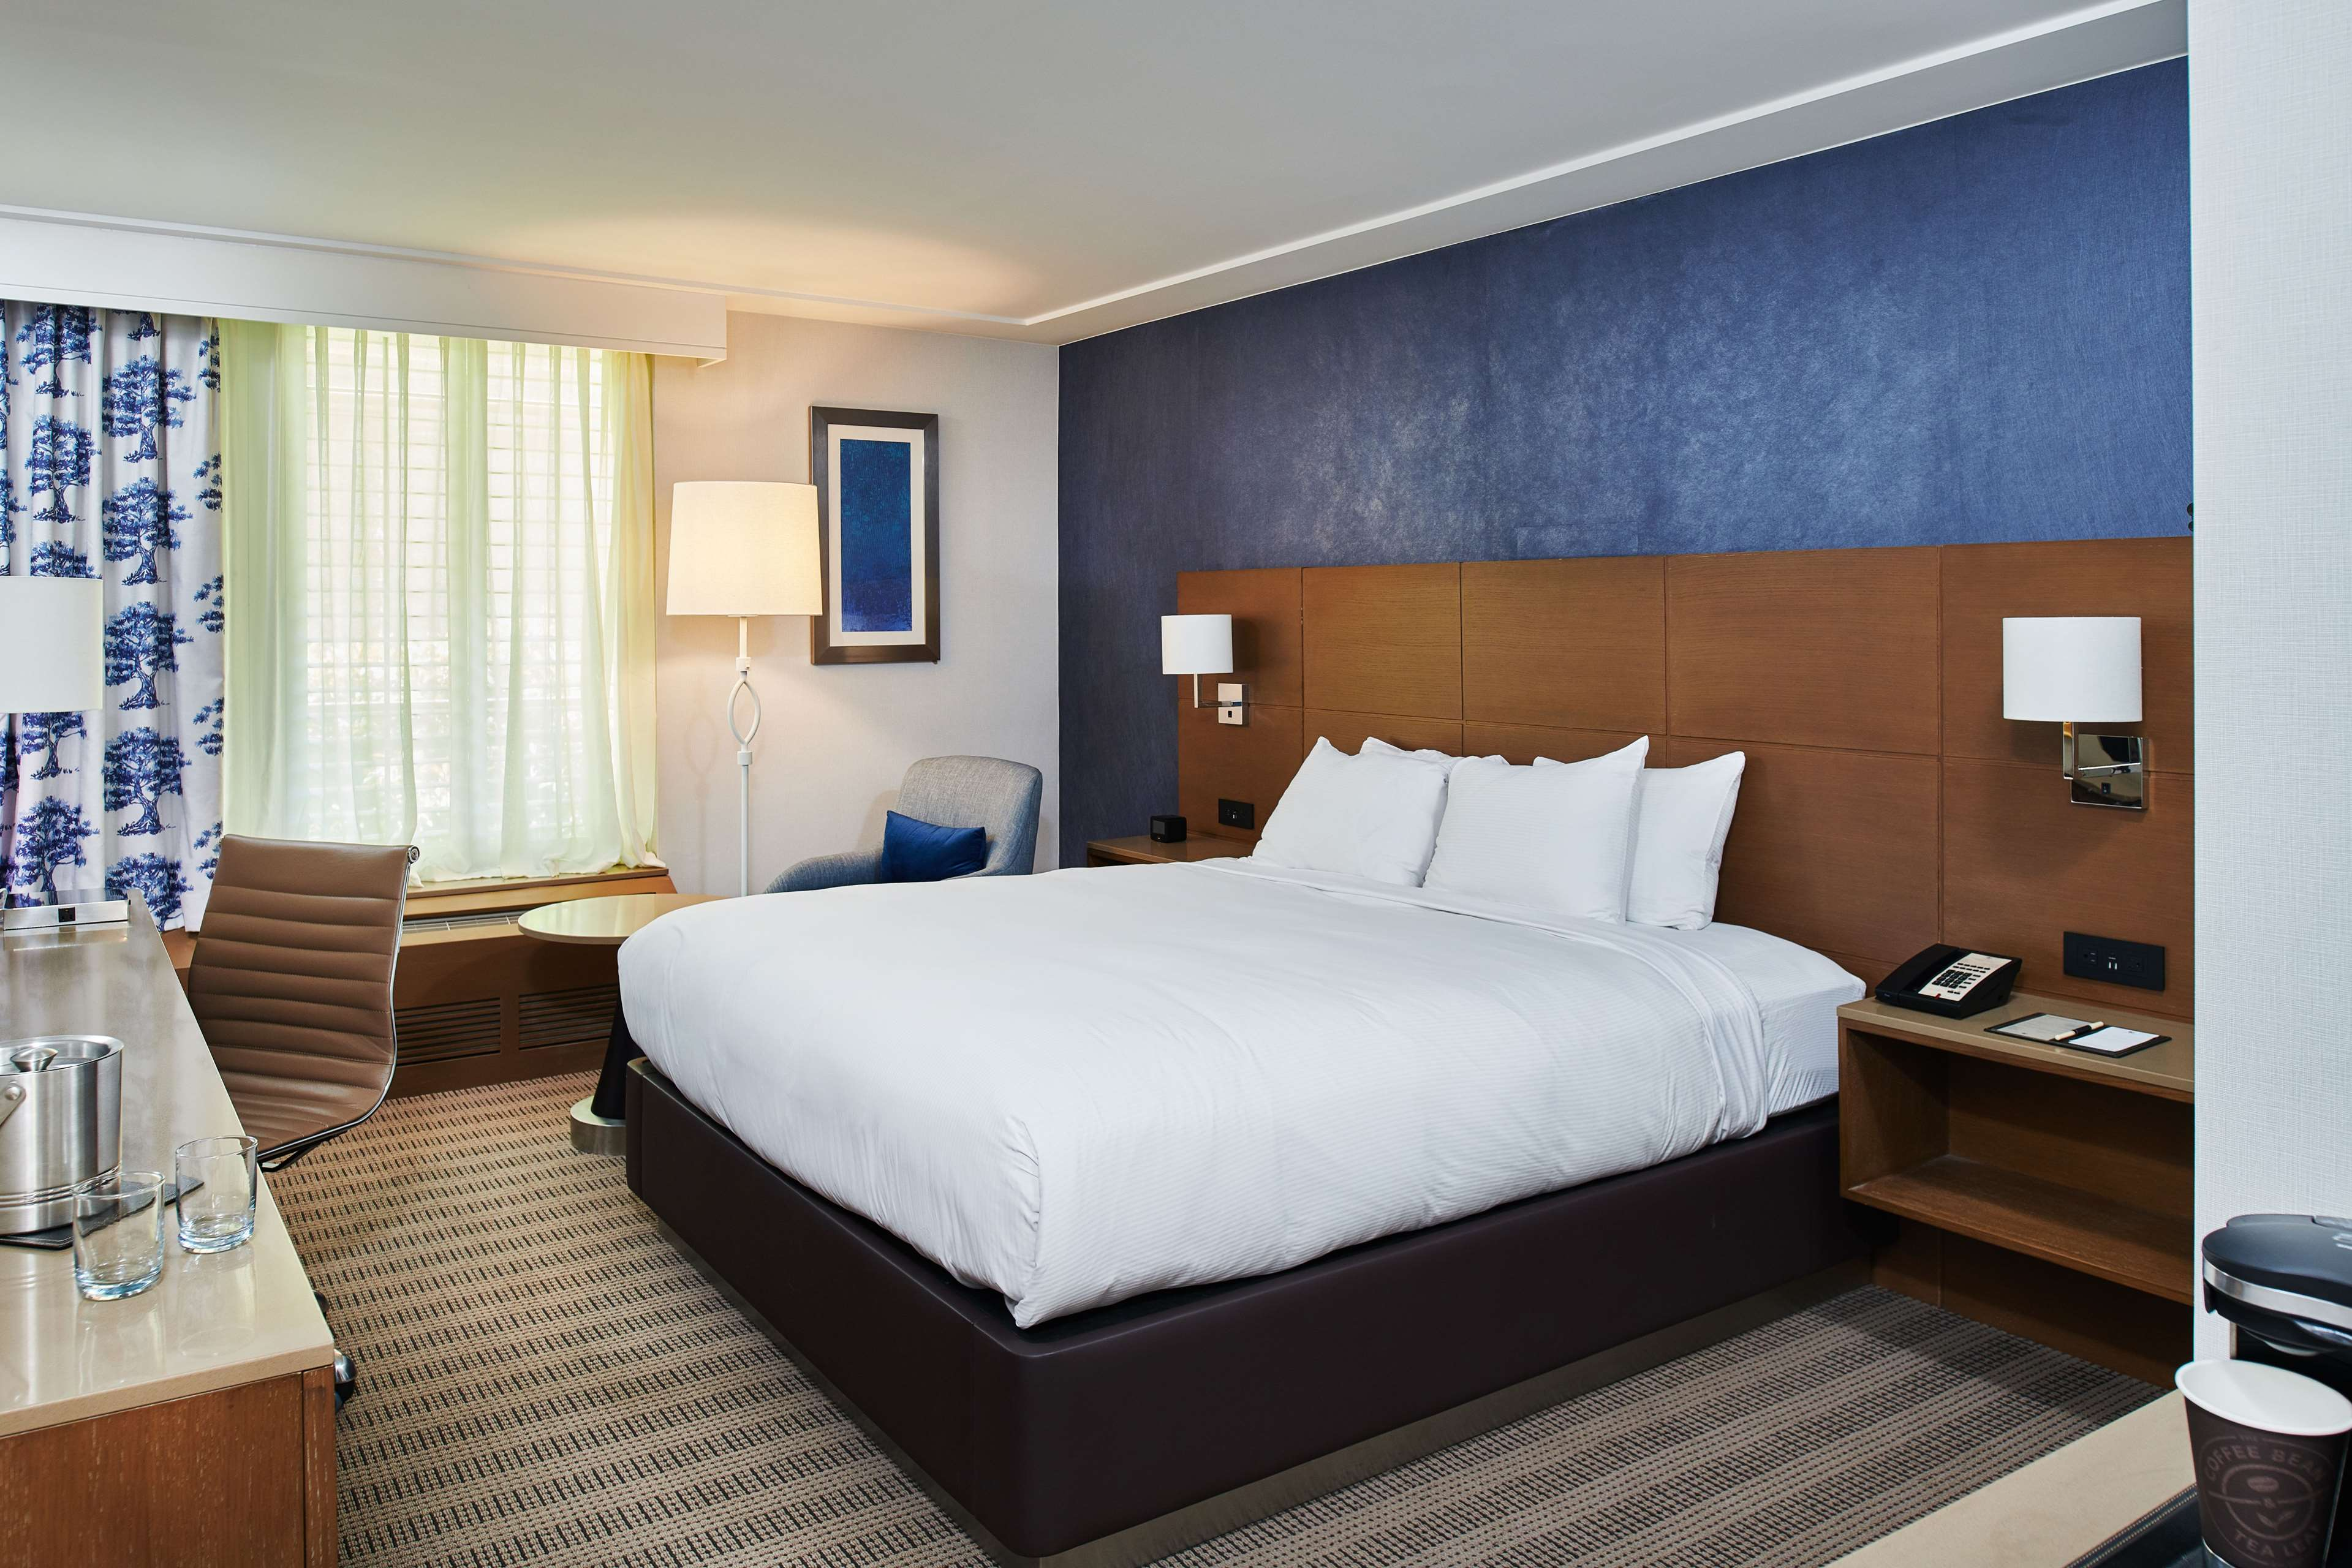 DoubleTree by Hilton Hotel Torrance - South Bay image 6